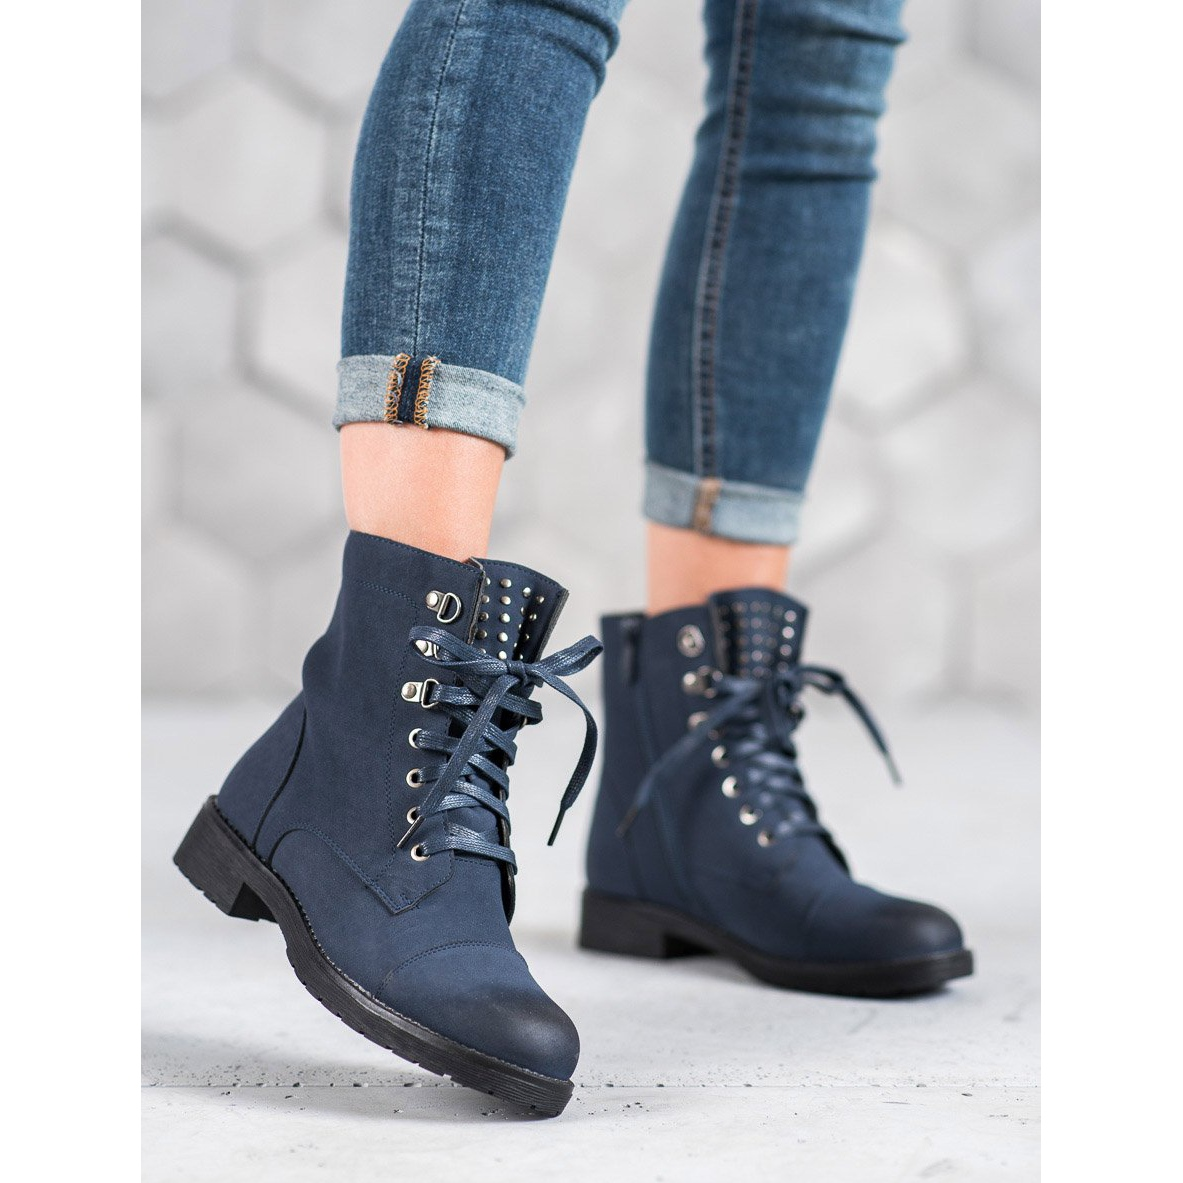 S. BARSKI Navy Blue Lace-up ankle boots